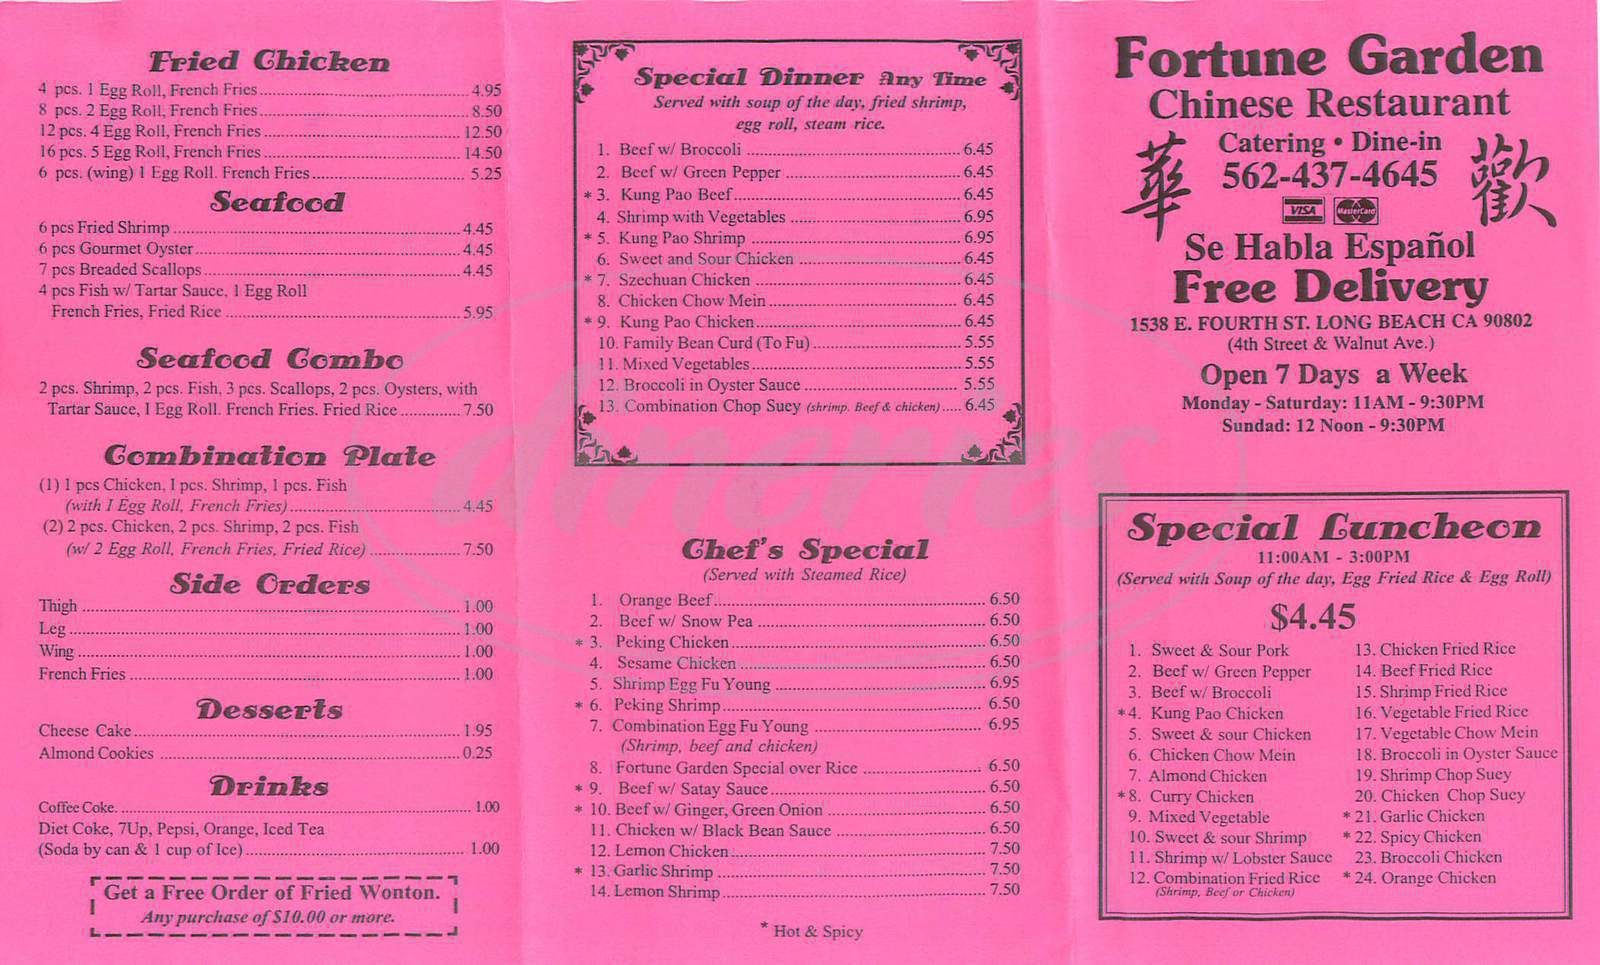 menu for Fortune Garden